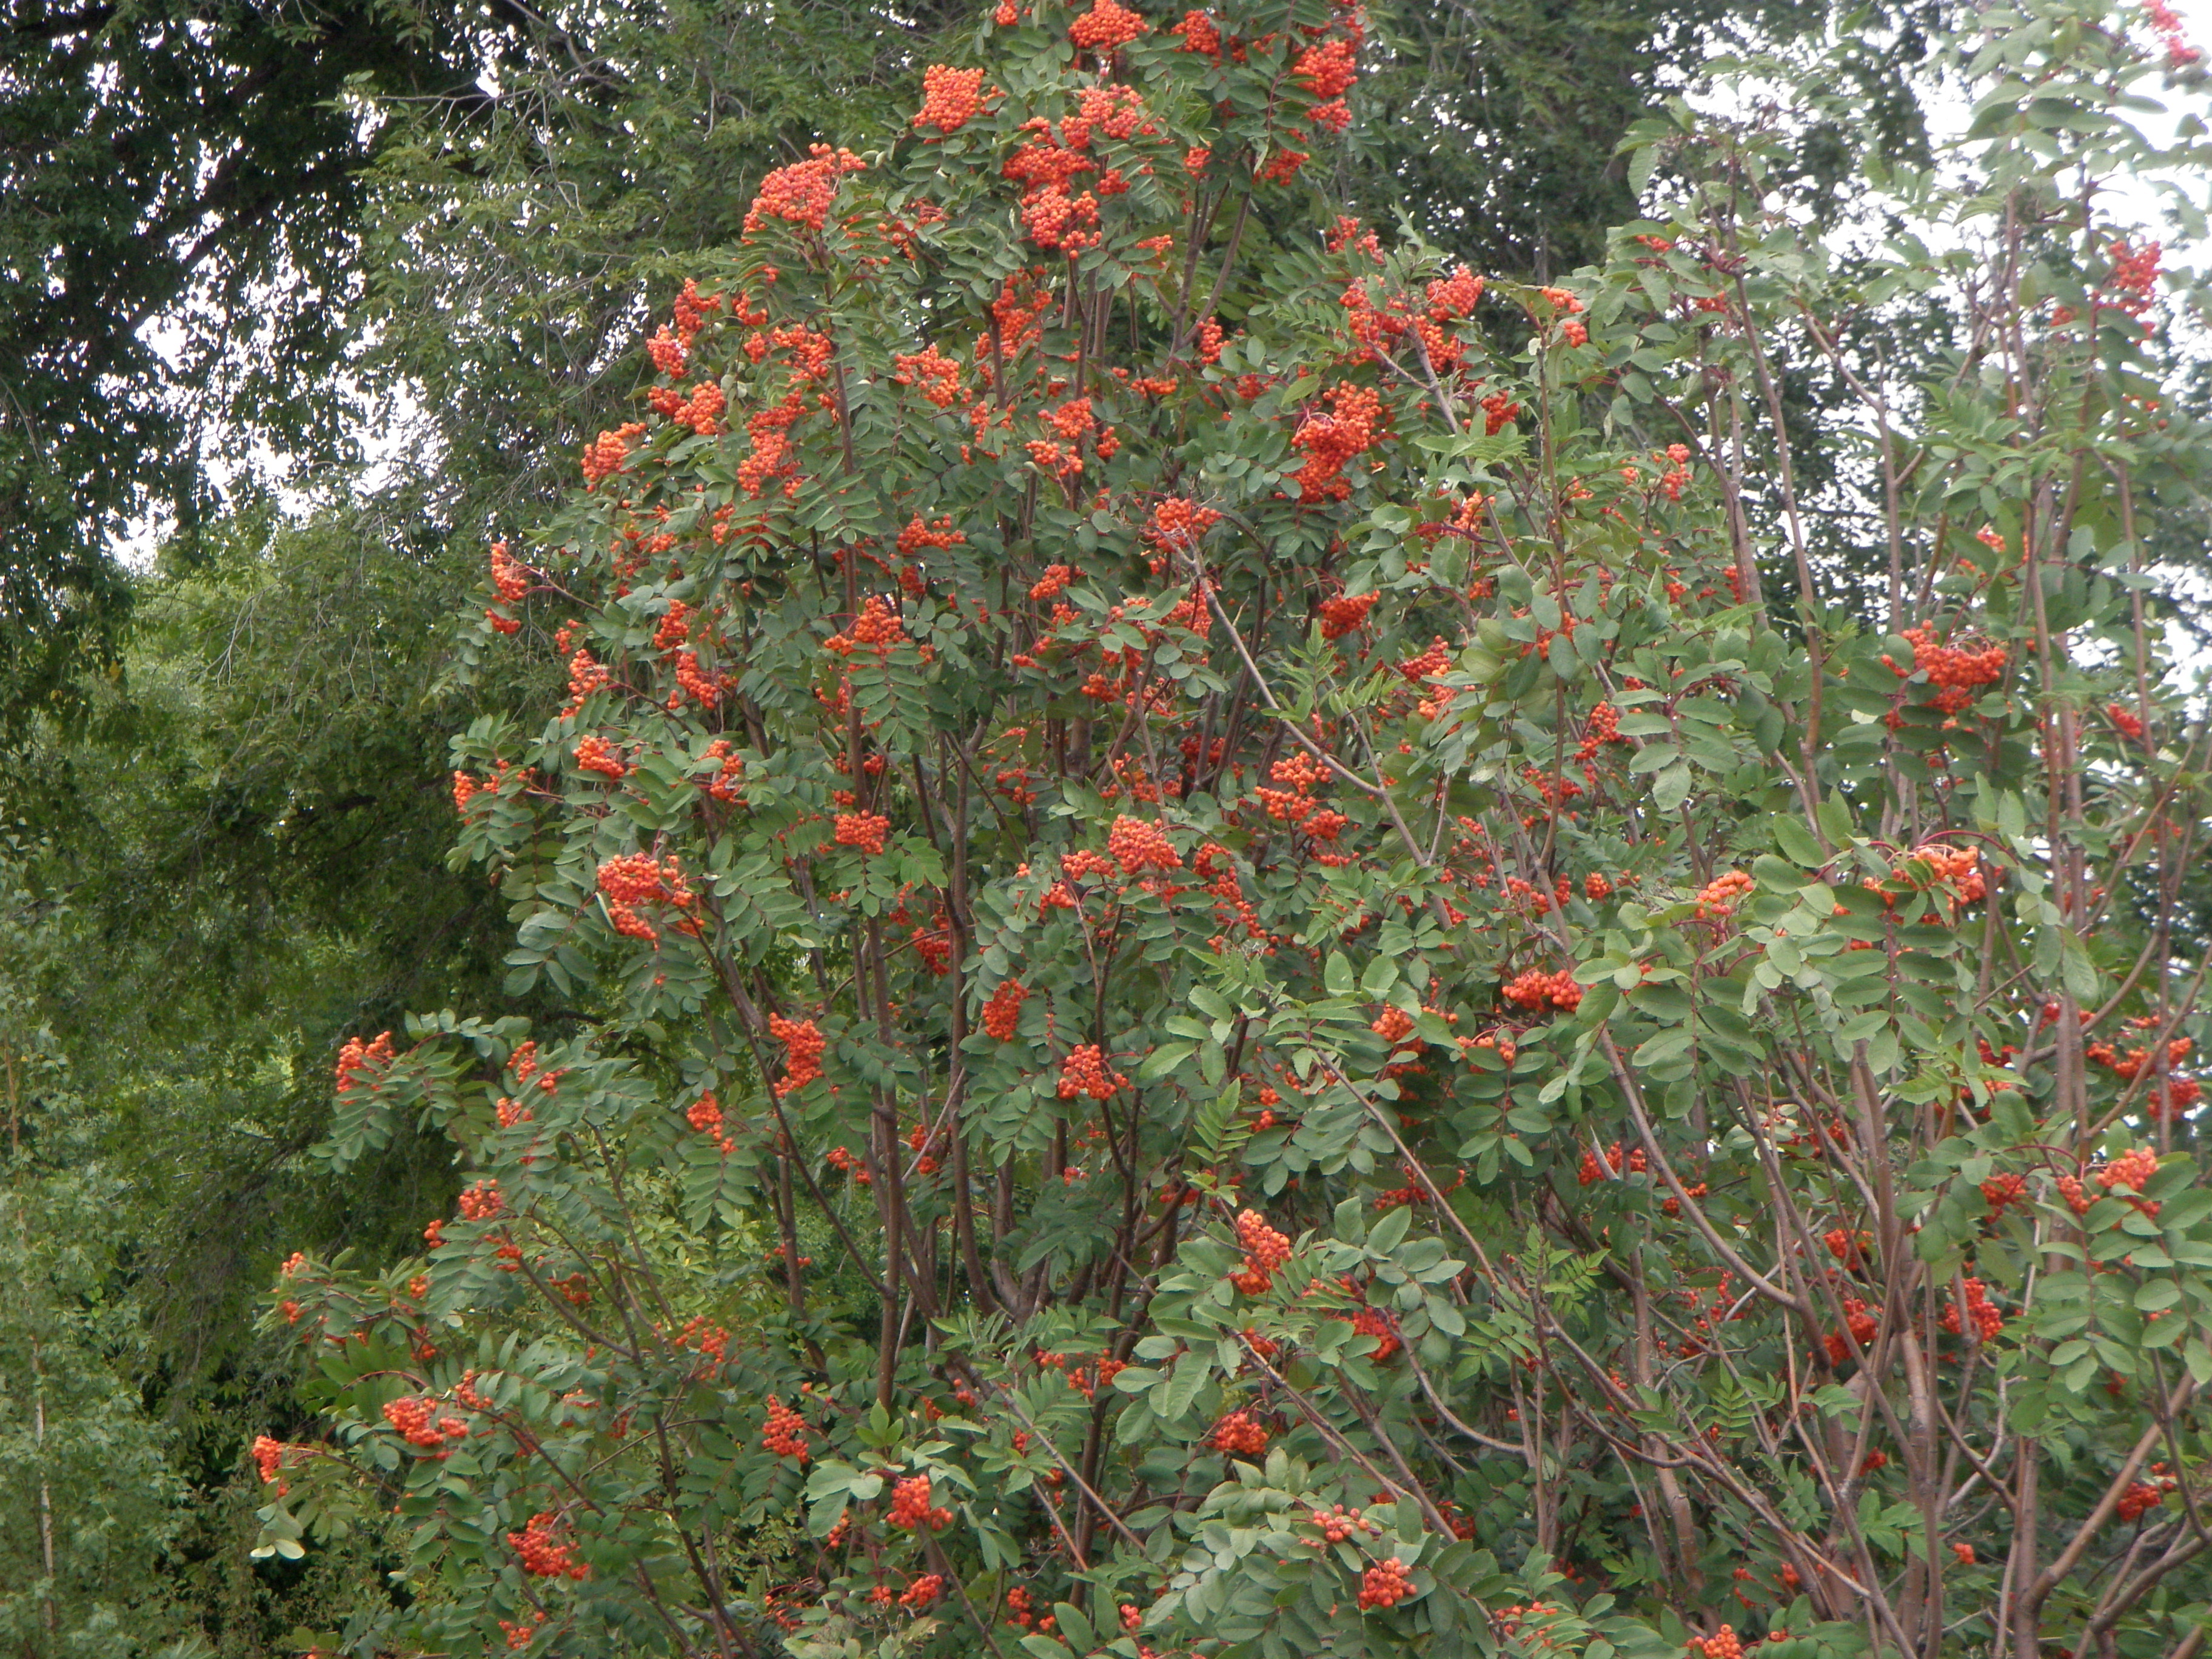 Cedar wax wings fall color showy mountain ash trees with berries